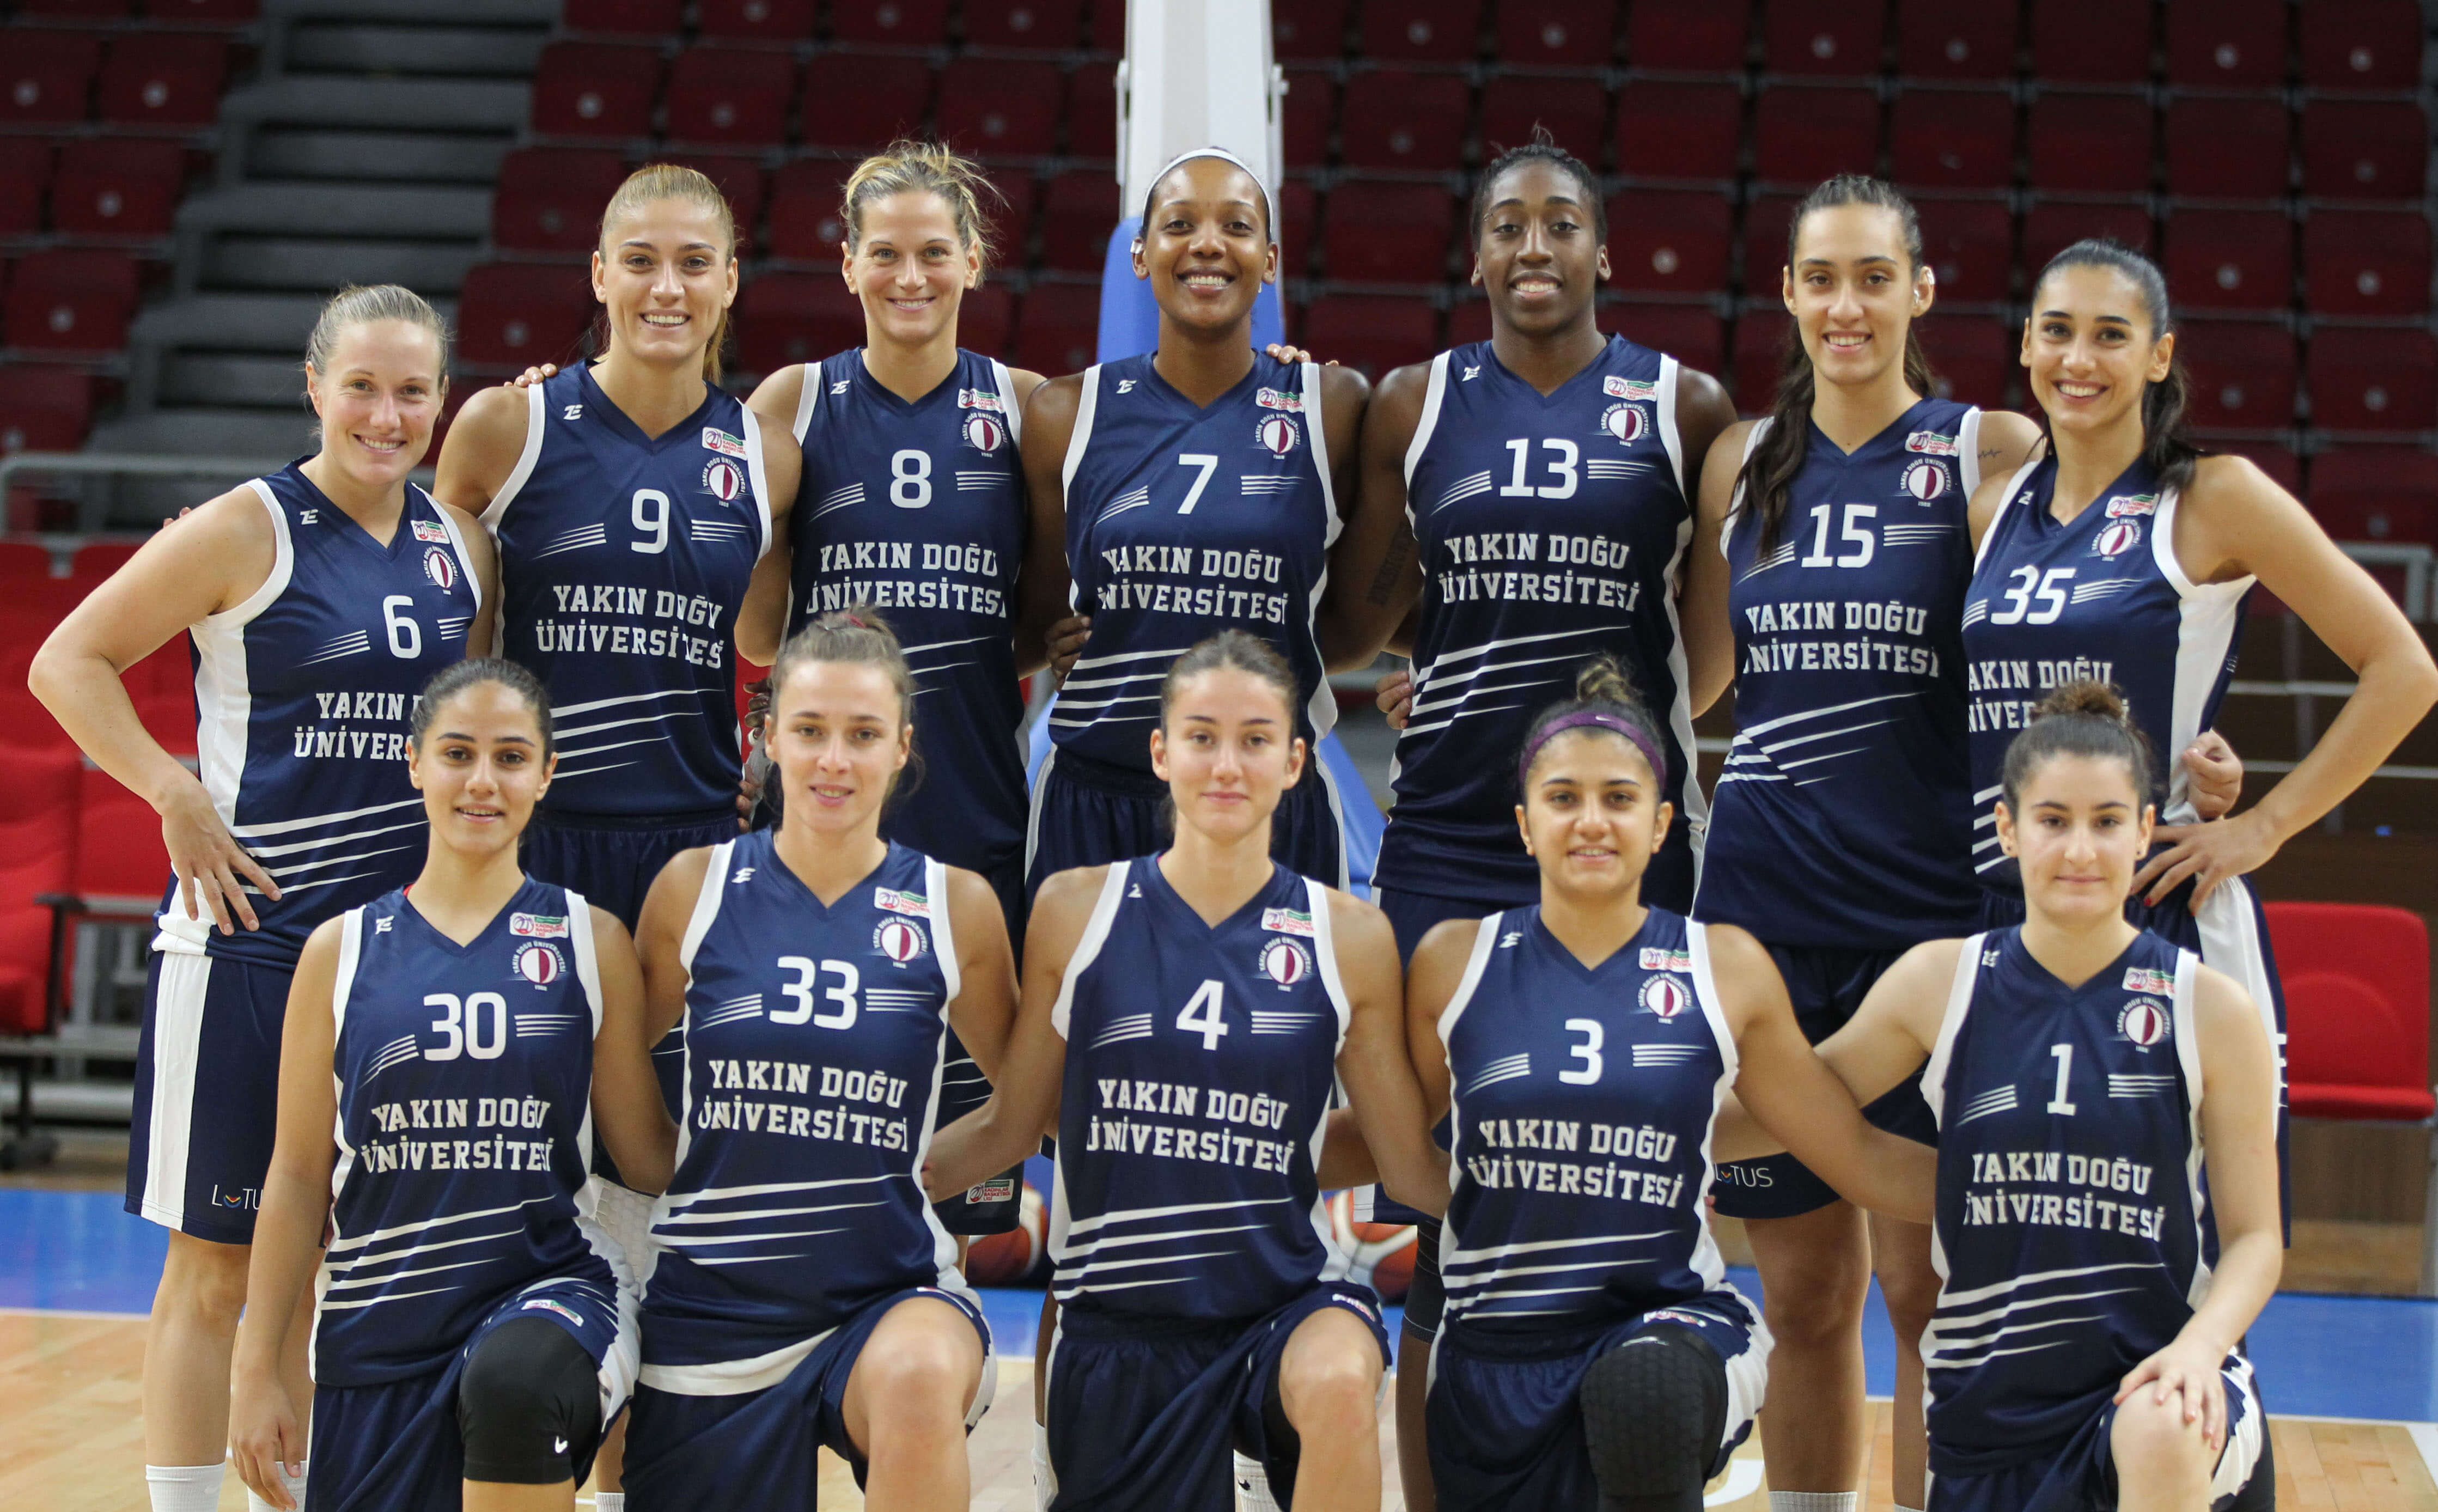 Europe Near East University Women's Basketball Team is ready for its Europe Excitement